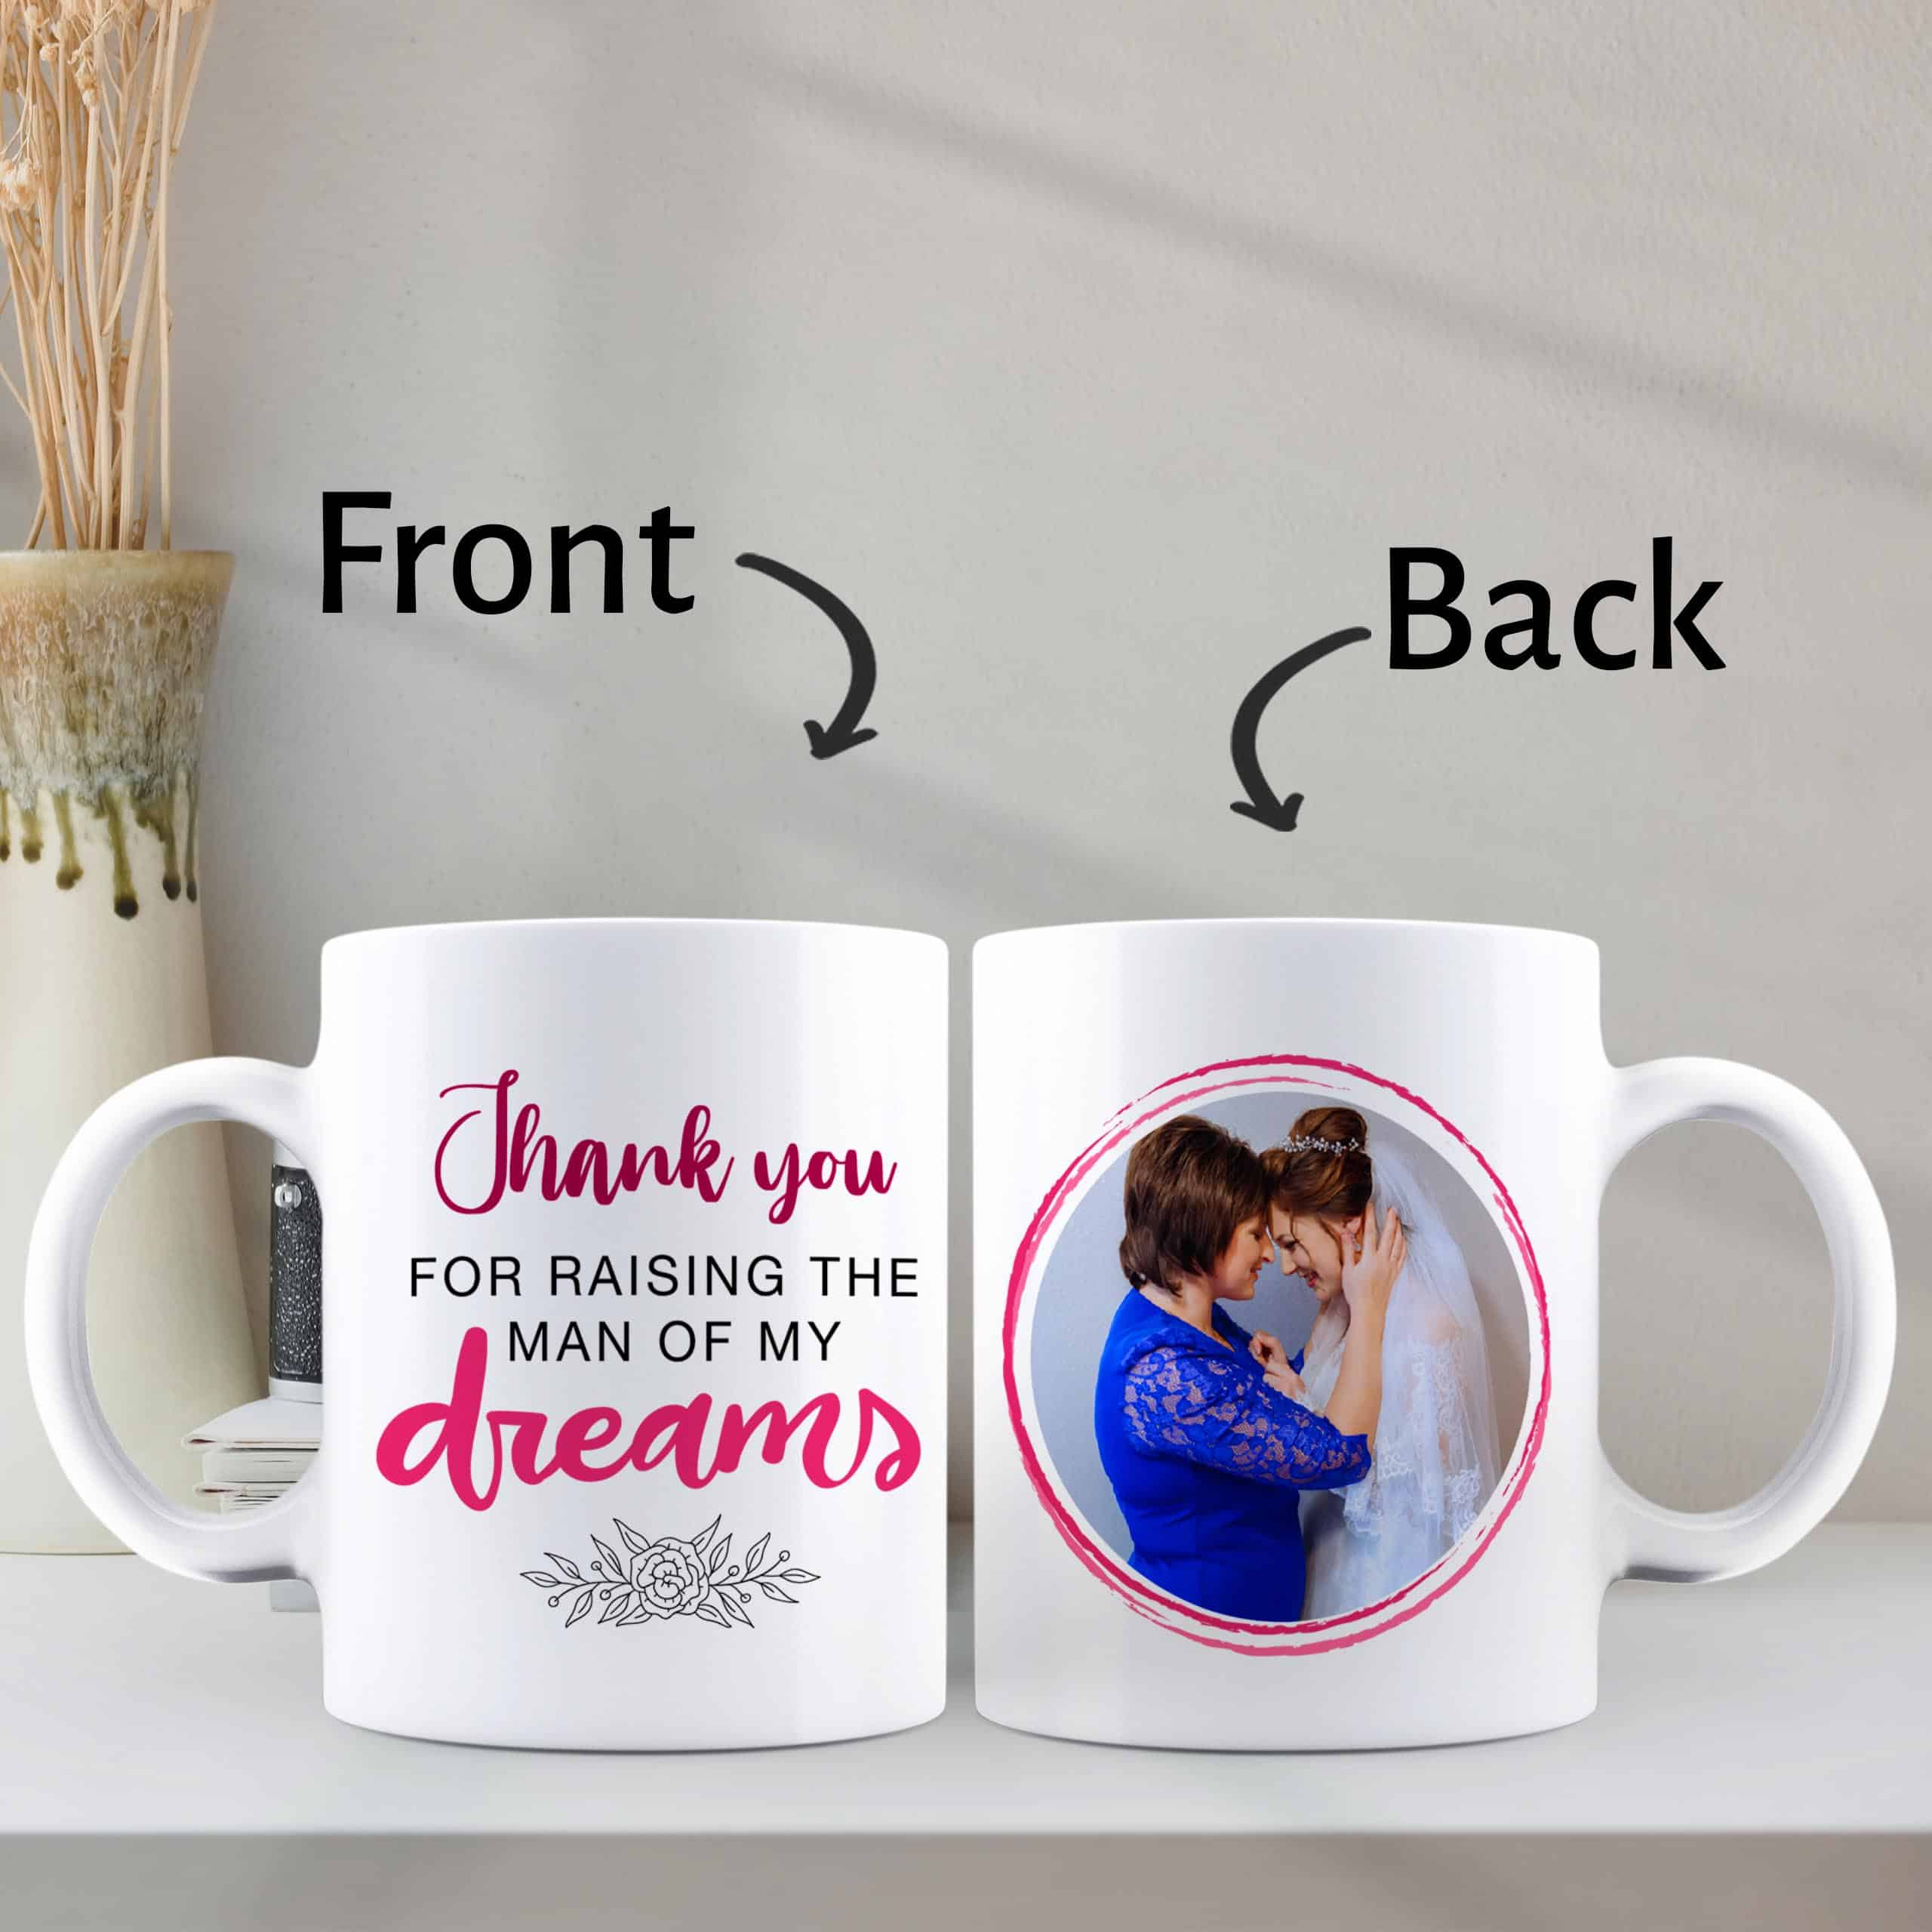 Thank You For Raising The Man Of My Dreams - Photo Mug For Mother Of The Groom